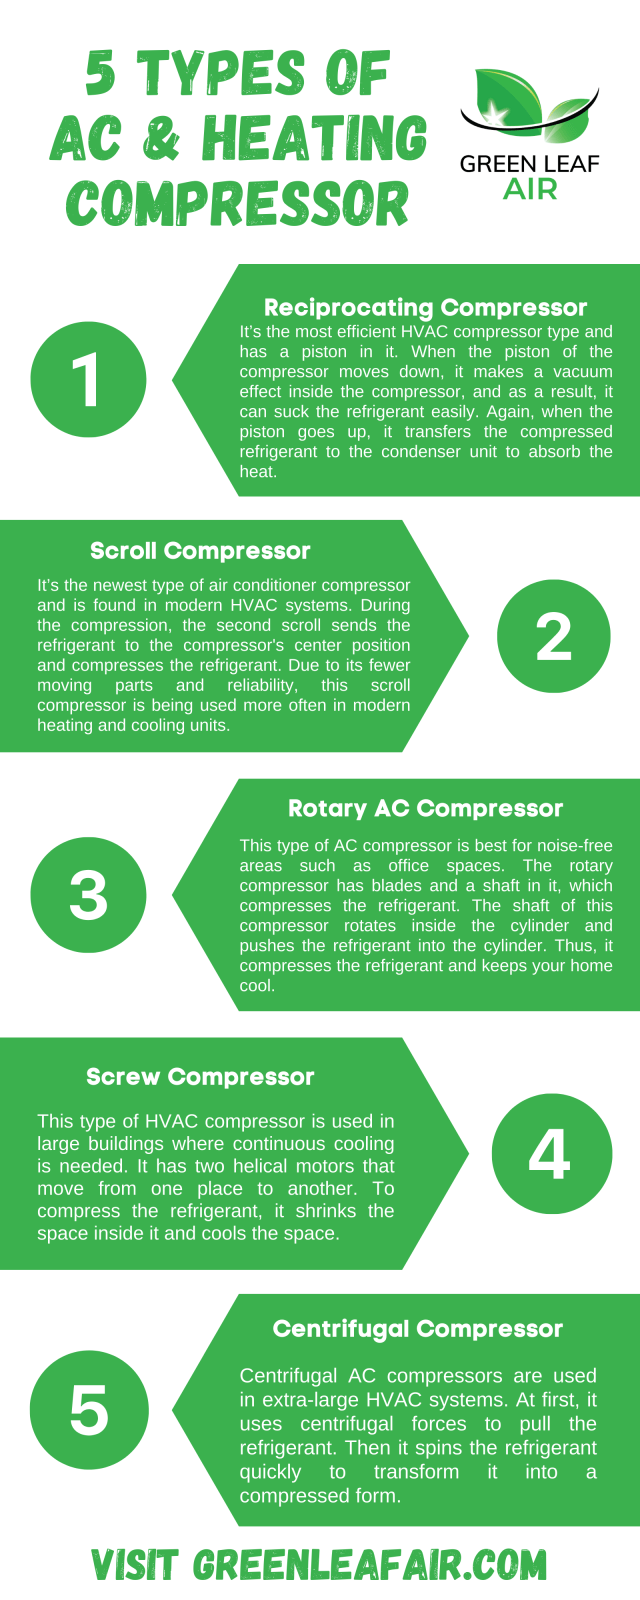 5 Types of AC & Heating Compressor